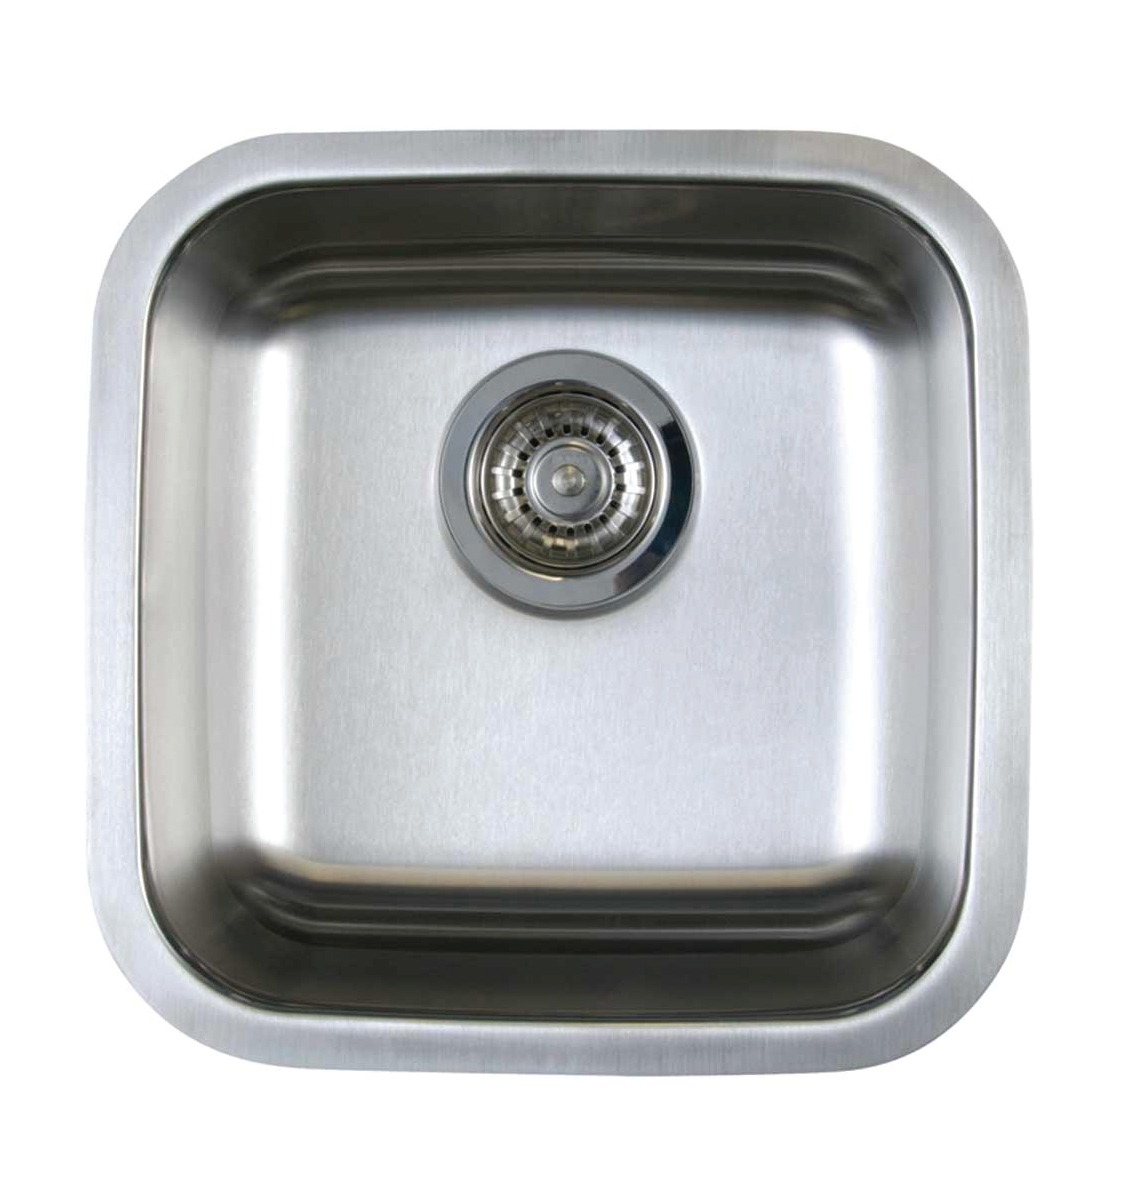 Blanco Single Sink : ... Sinks / Blanco 441026 Stellar Bar Single Bowl Sink, Stainless Steel